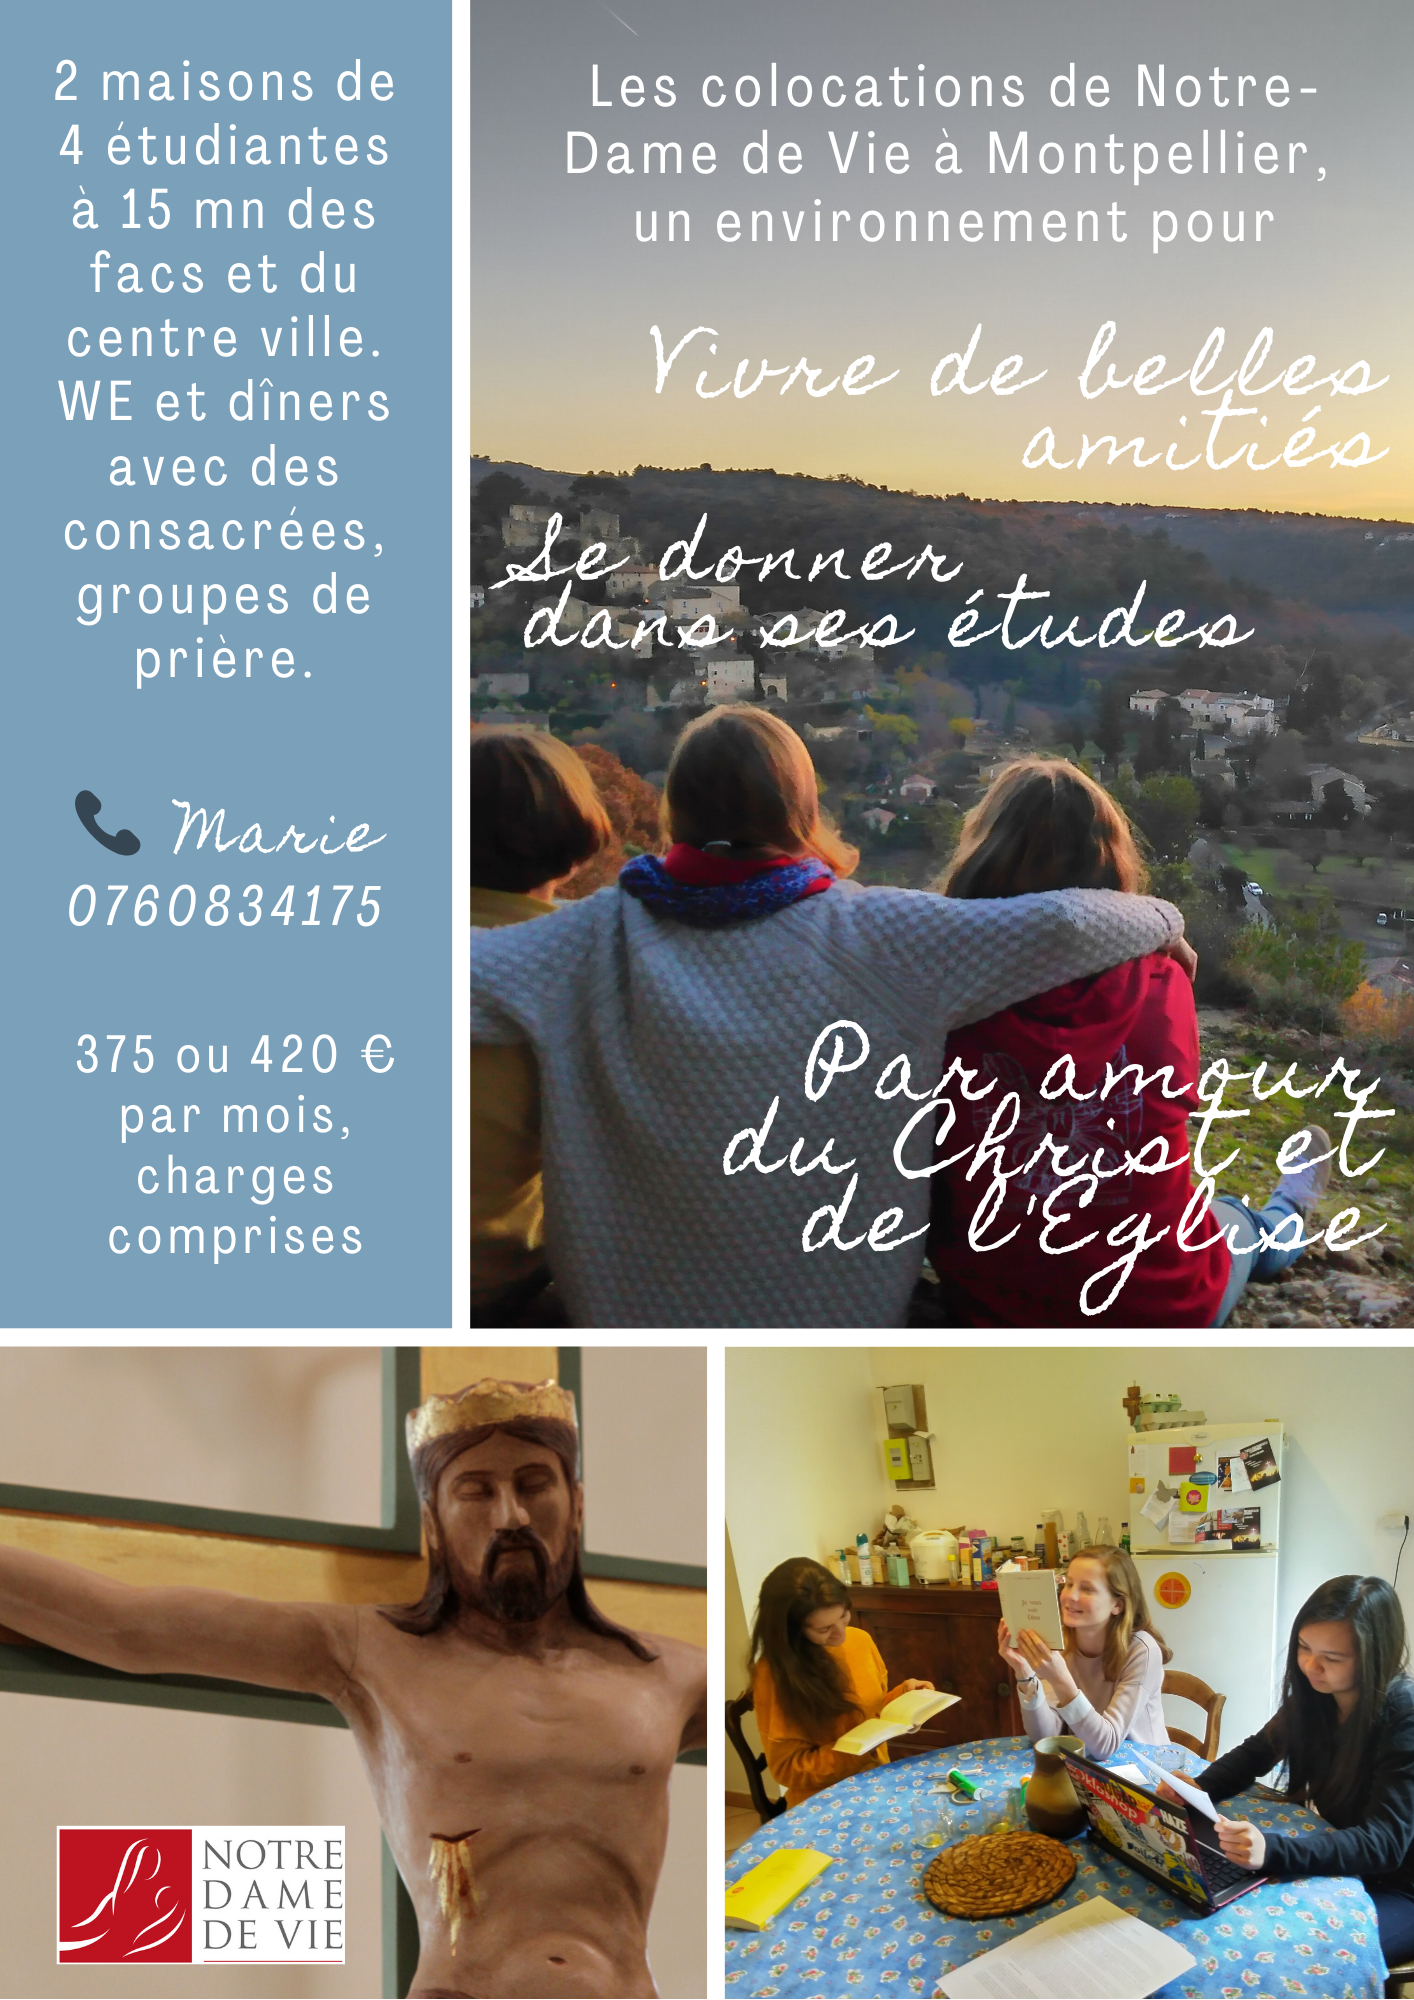 Colocations NDV Montpellier